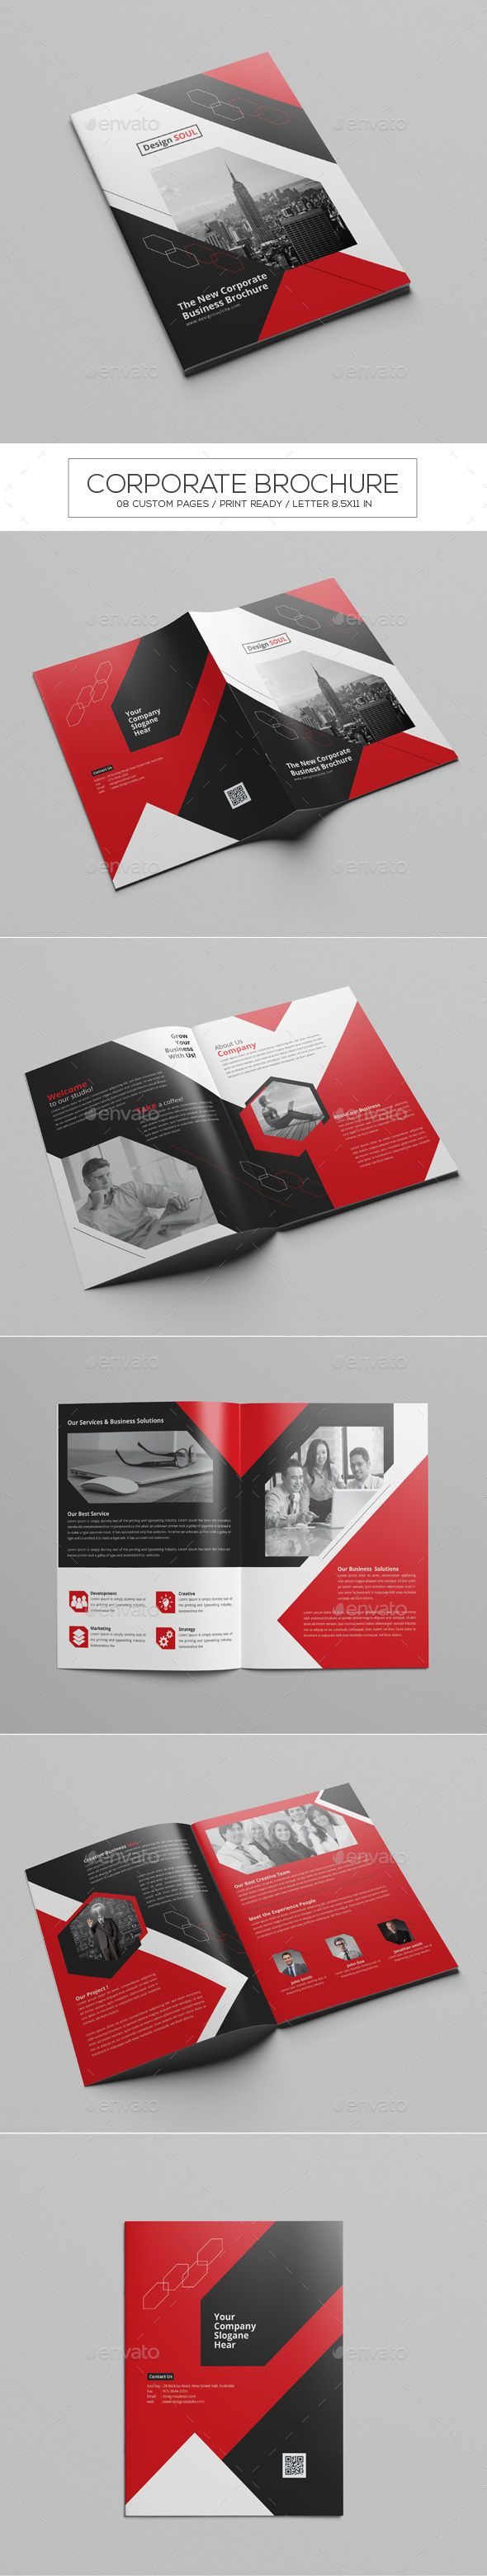 Corporate Brochure  — InDesign Template #inspiration #trend #magazine • Download ➝ https://graphicriver.net/item/corporate-brochure/18614600?ref=pxcr